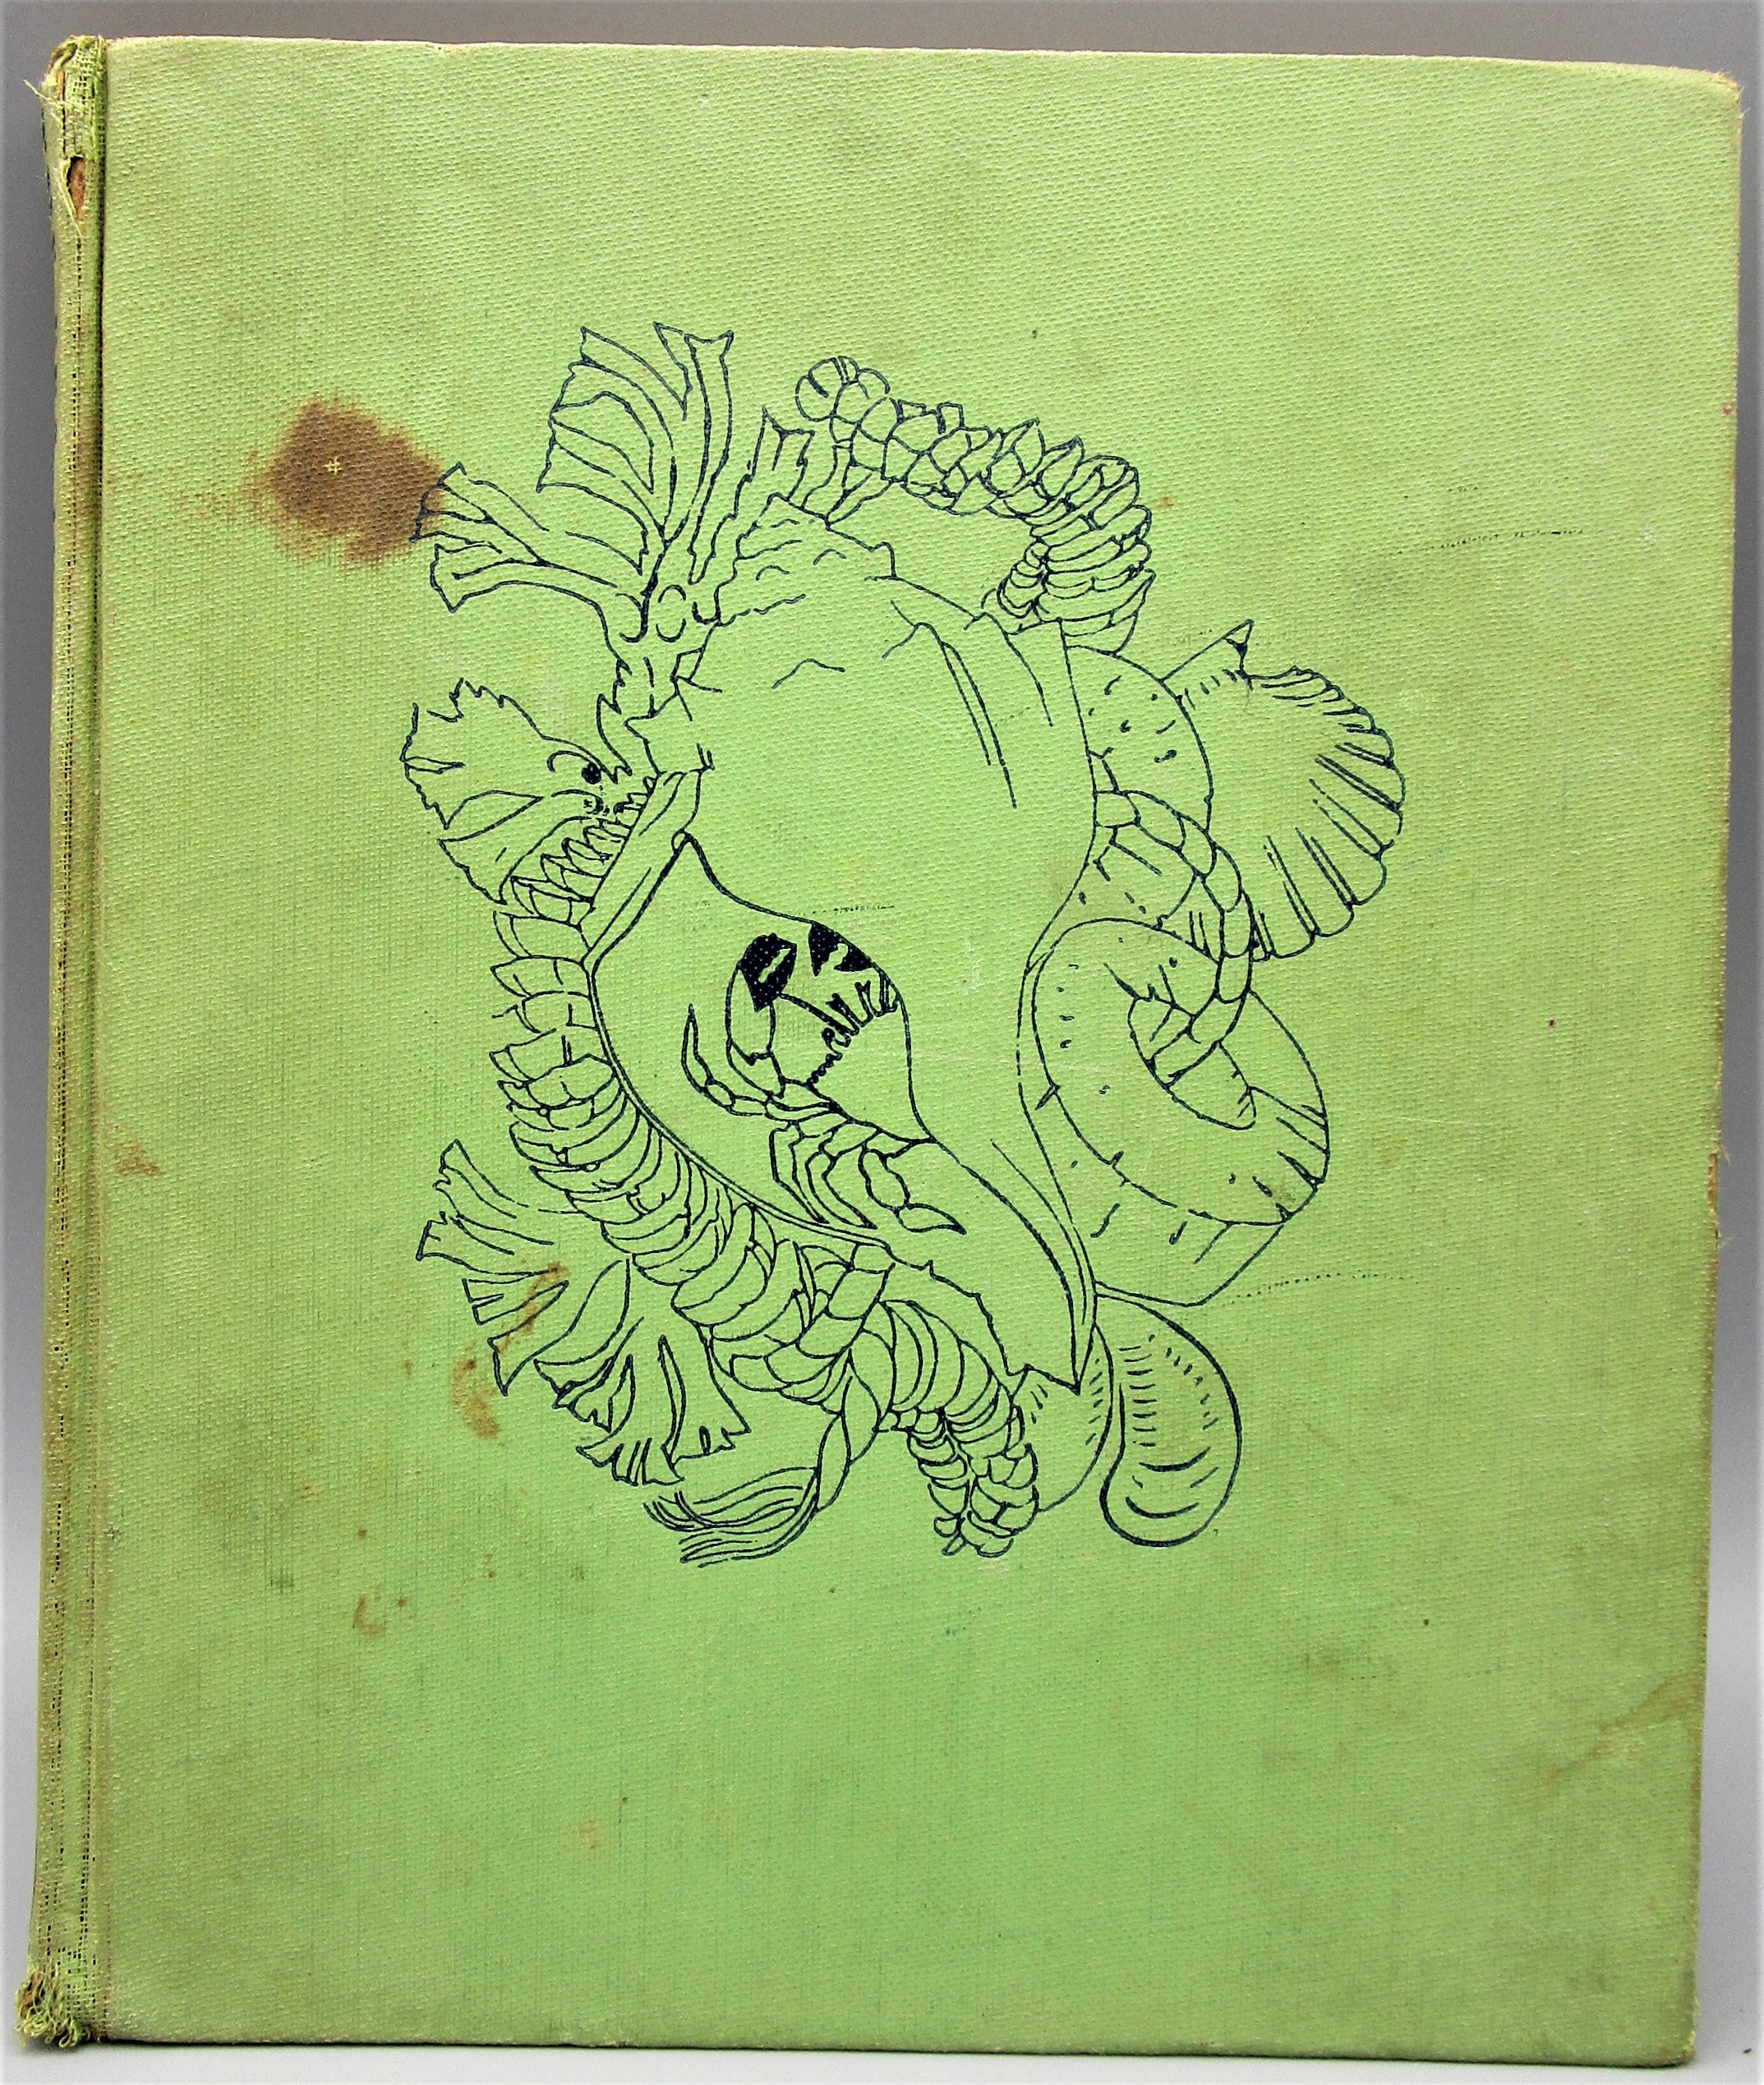 THE SEA IS ALL AROUND, by Elizabeth Enright - 1940 [1st Ed]